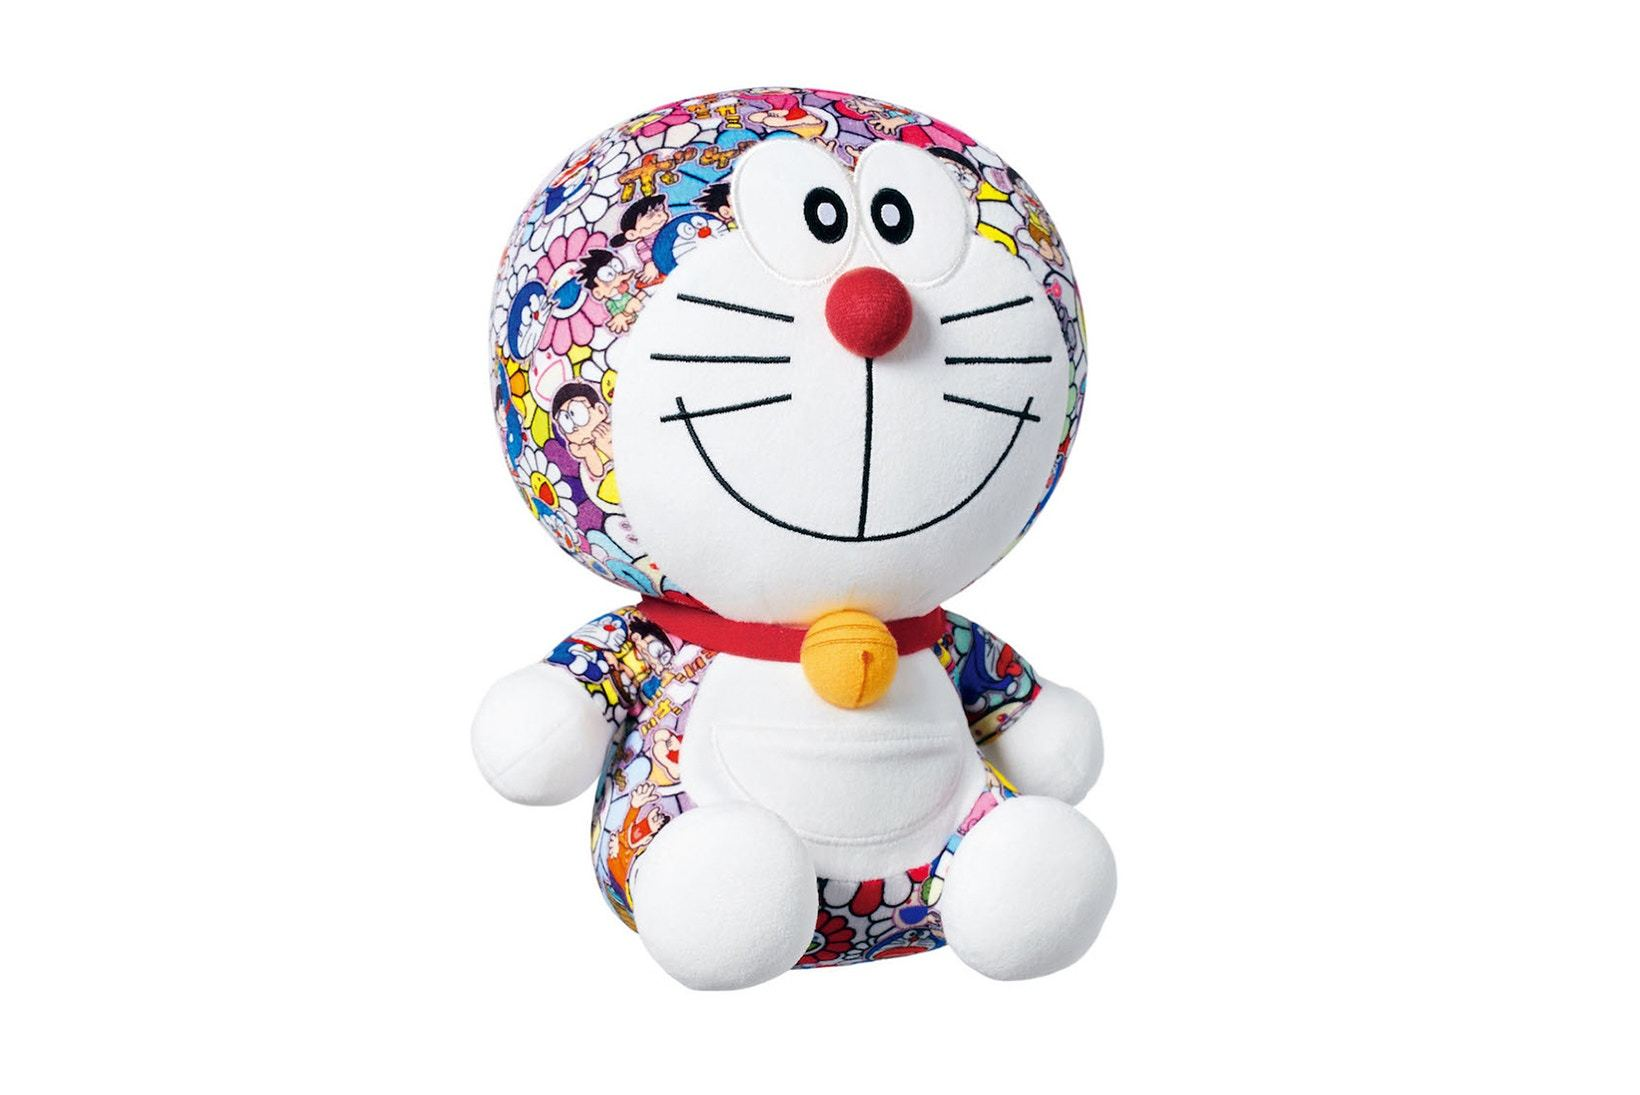 Uniqlo's Doraemon UT collab with artist Takashi Murakami hits stores on May 25